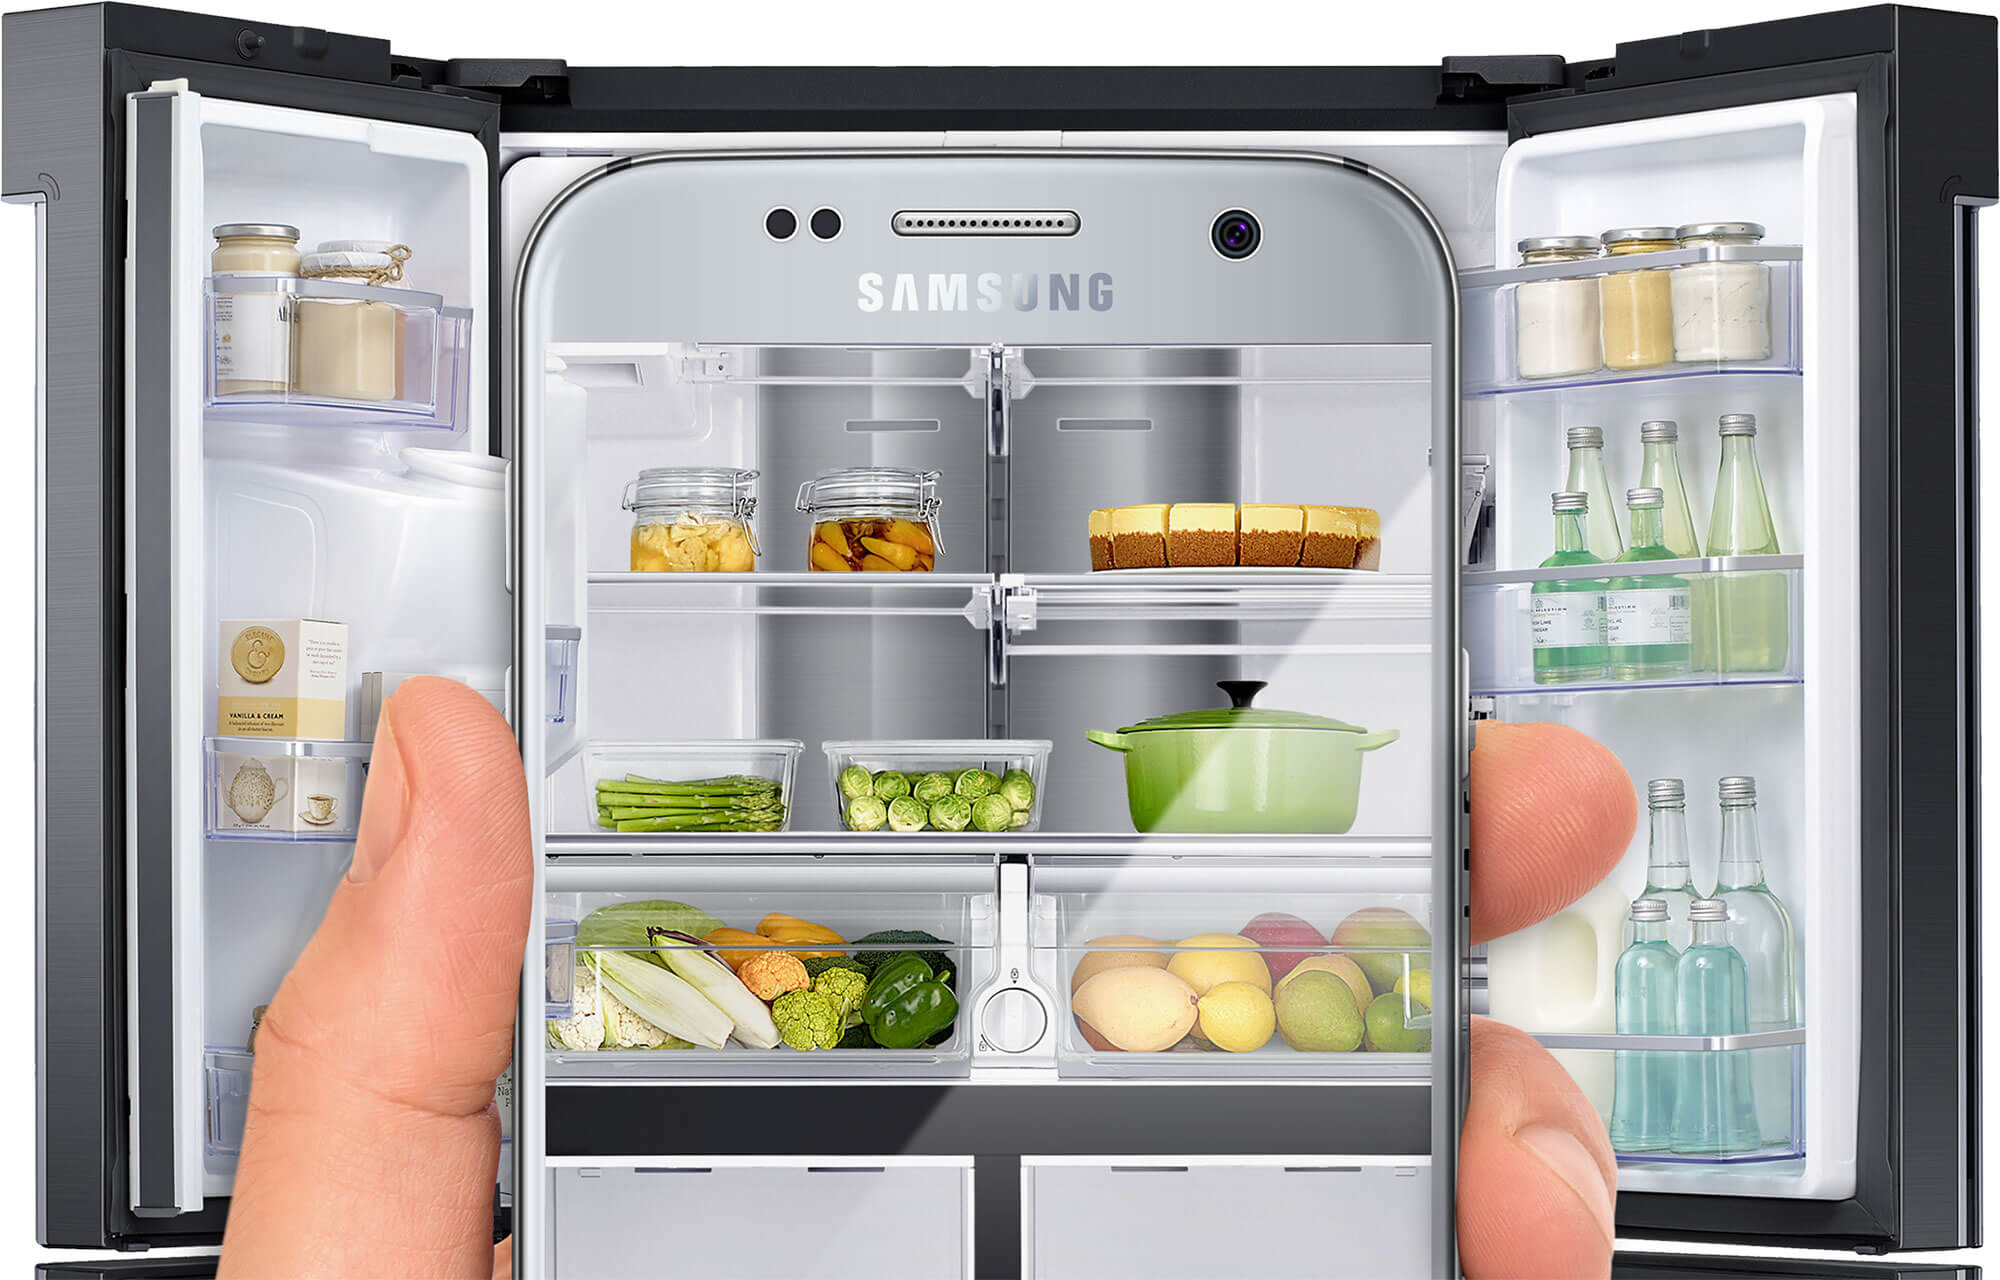 Manage your fridge on the go